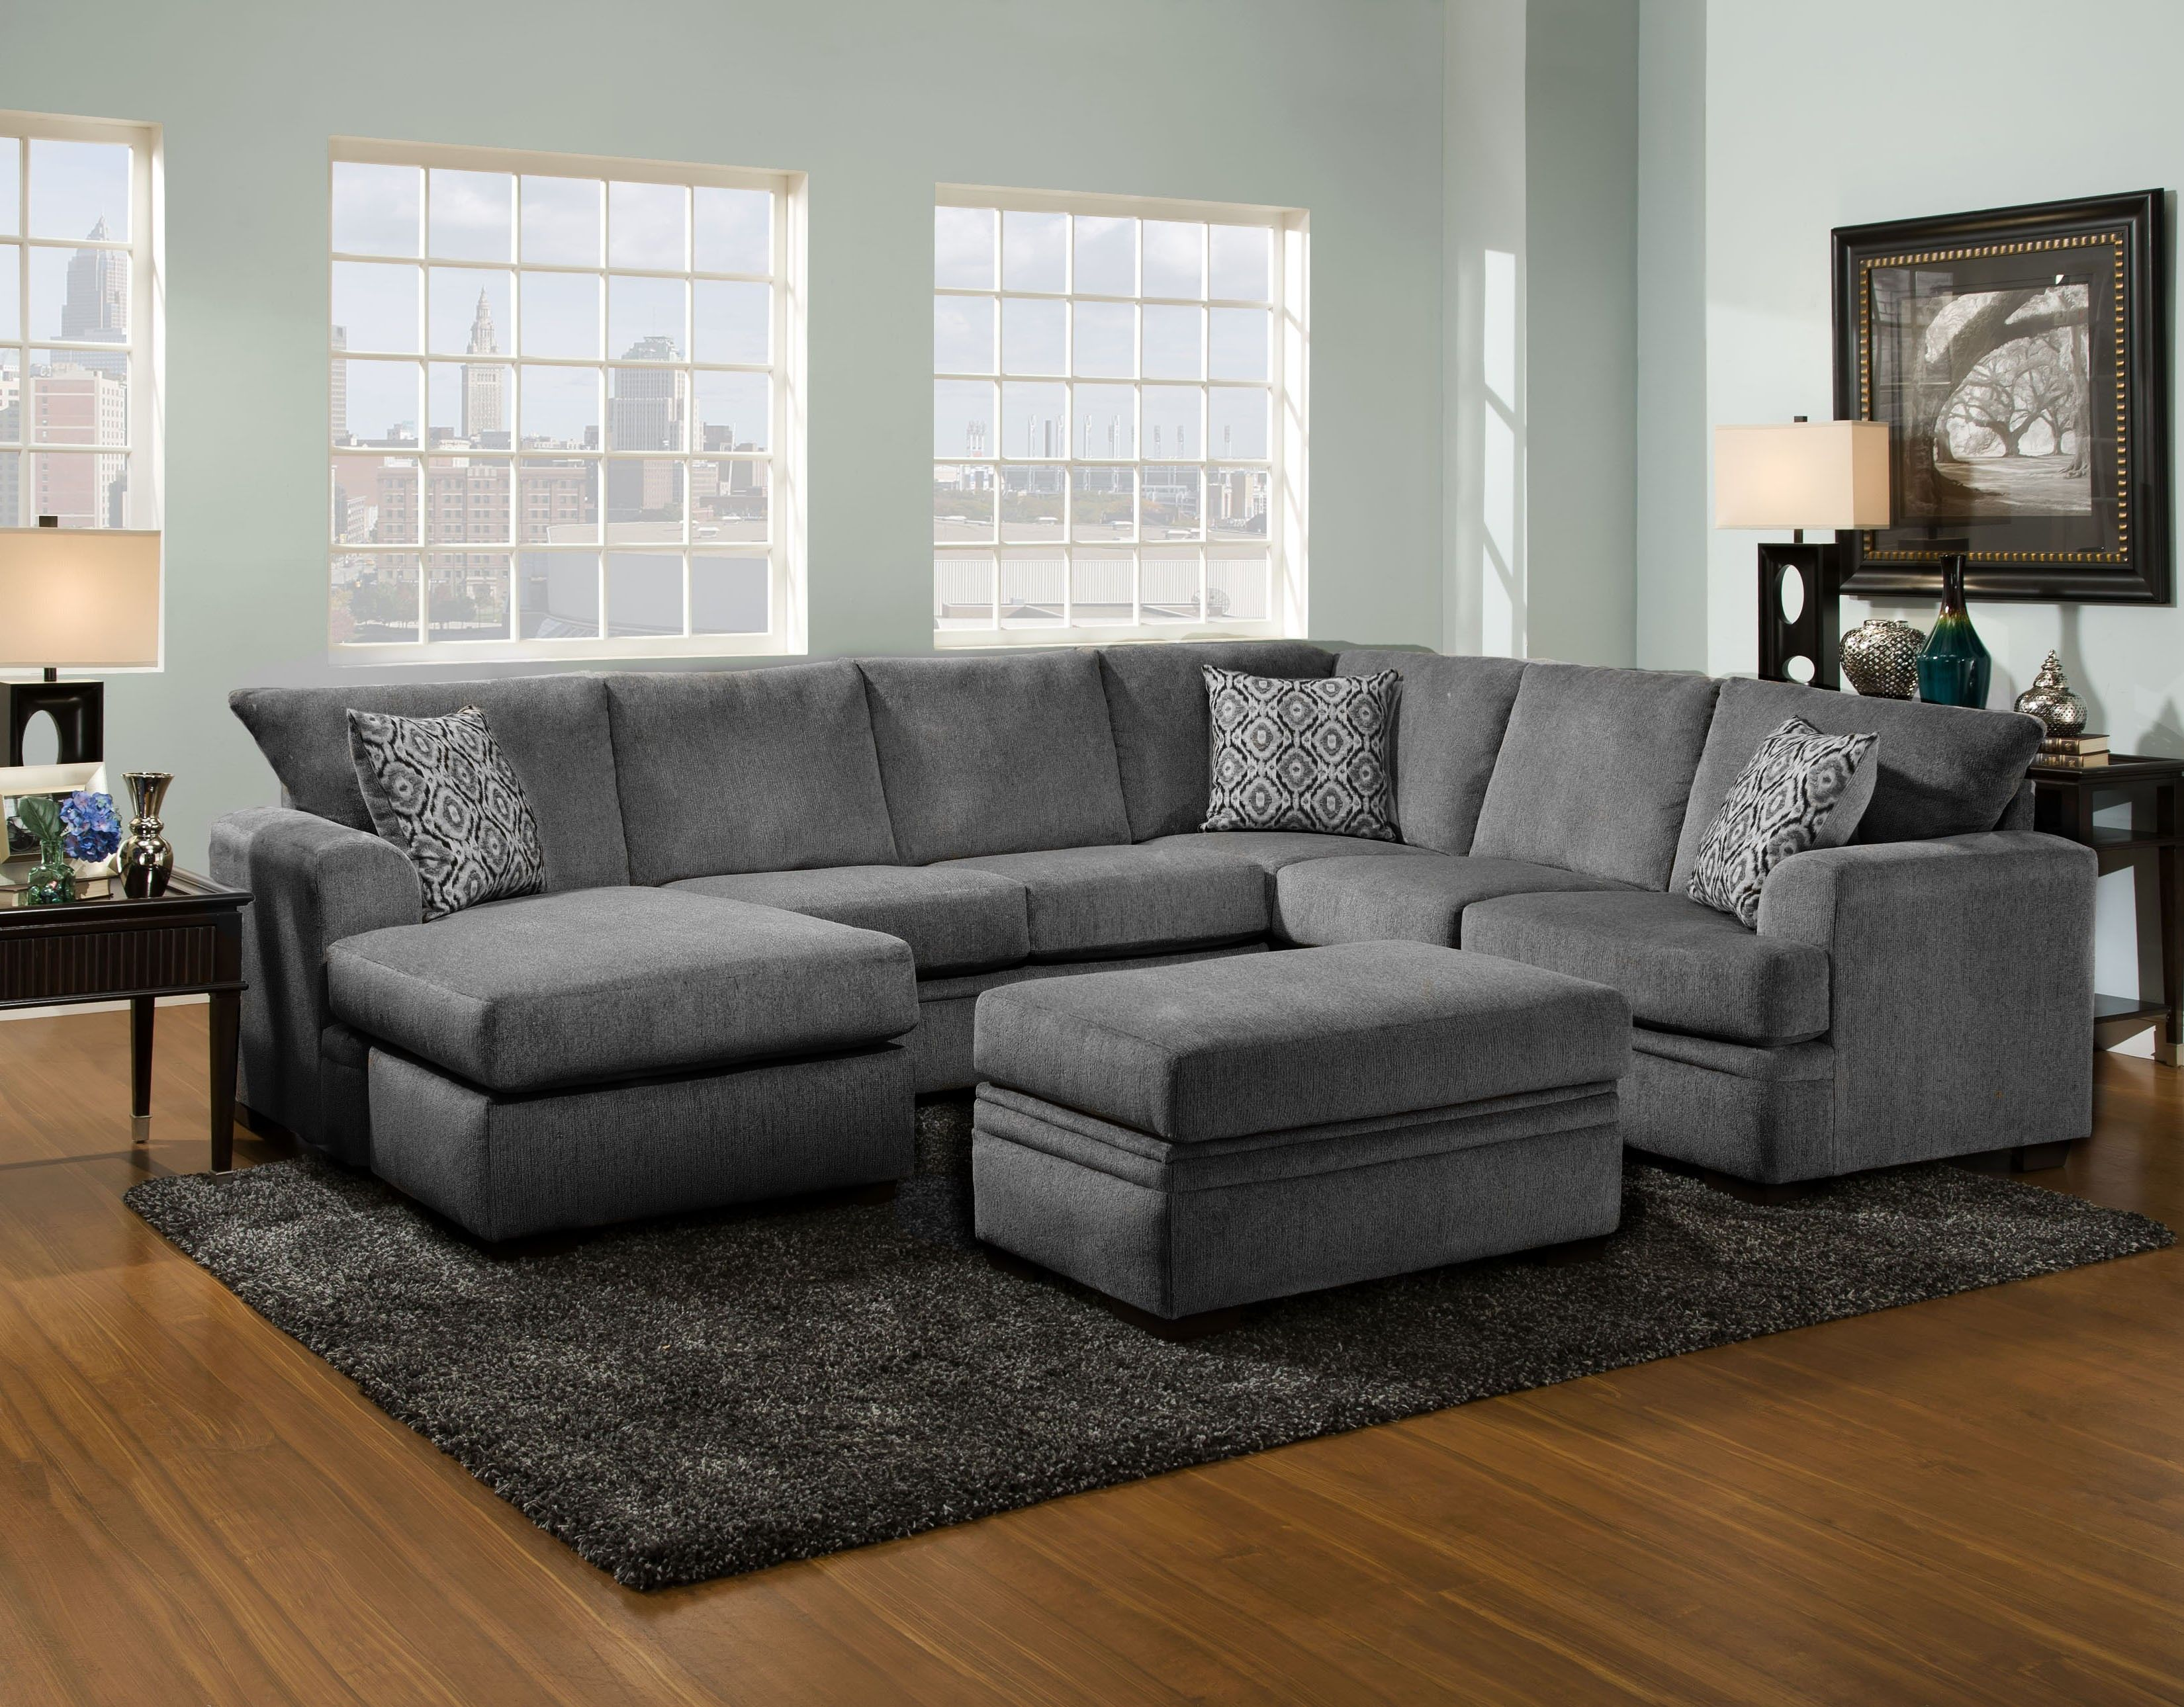 buy popular 21c56 29240 6810 - Oversized Chaise Sectional - Cornell Pewter | Living ...